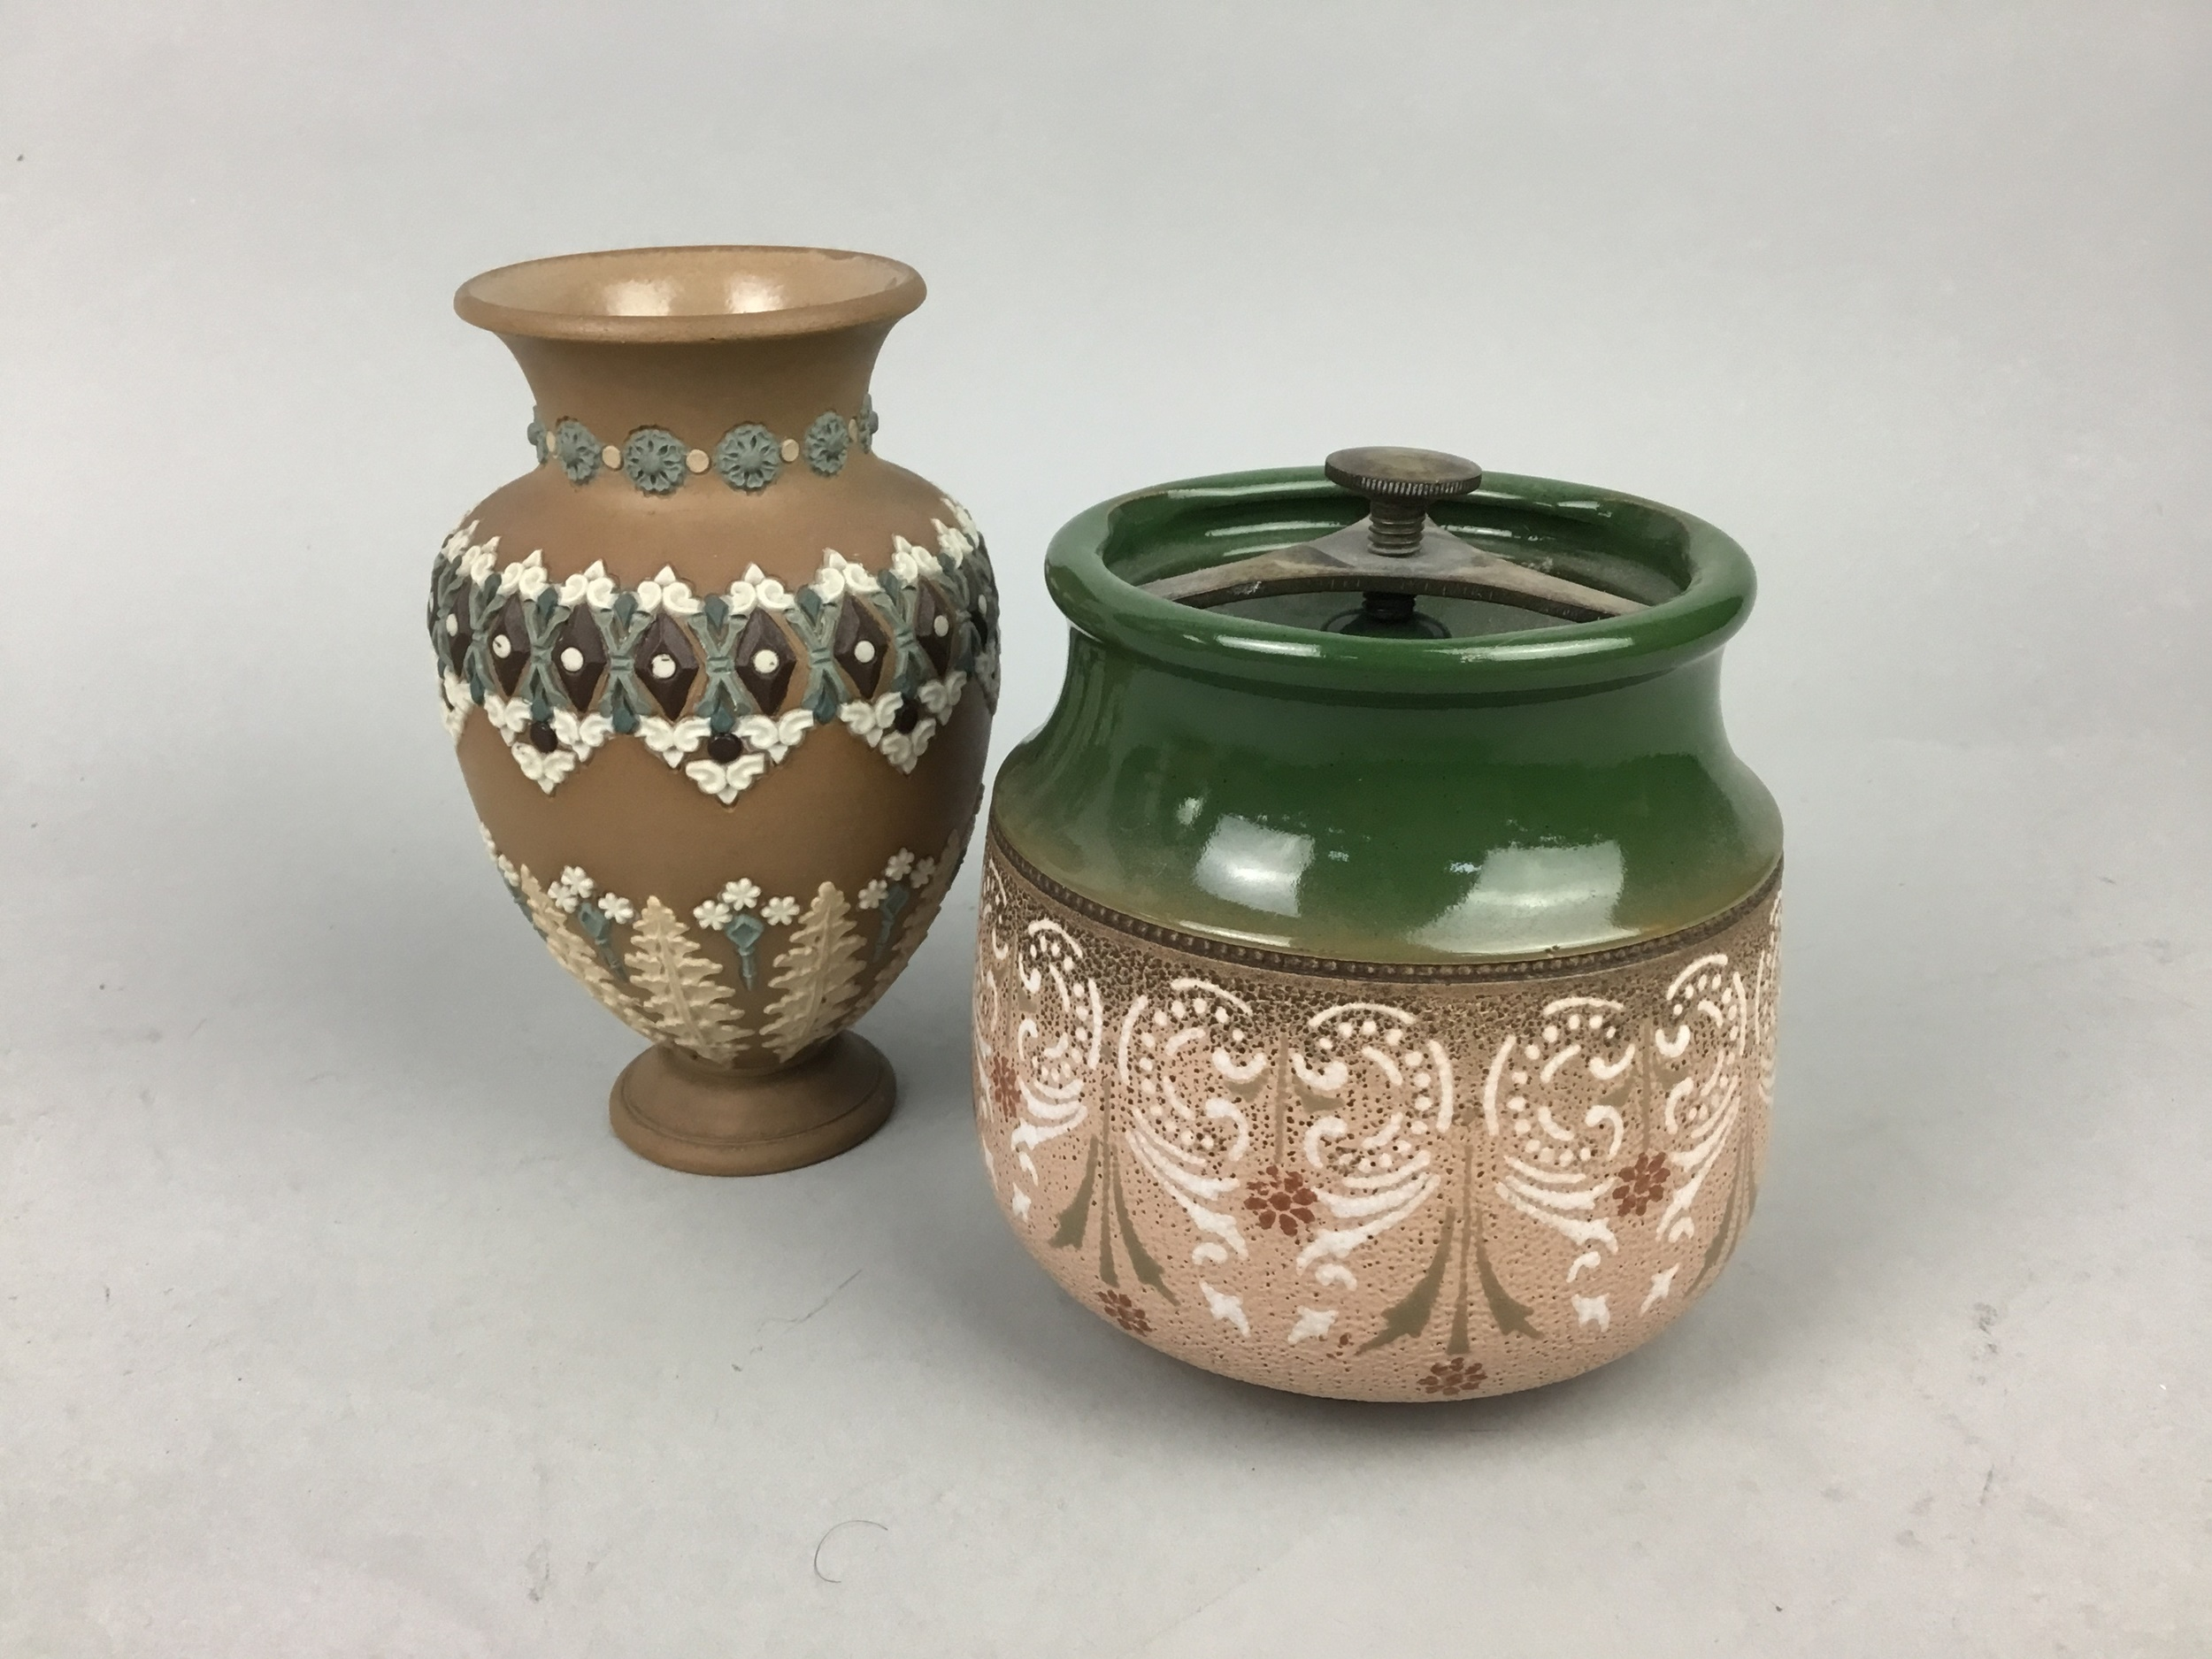 A ROYAL DOULTON EGYPTIAN REVIVAL JUG AND OTHER ITEMS - Image 2 of 2